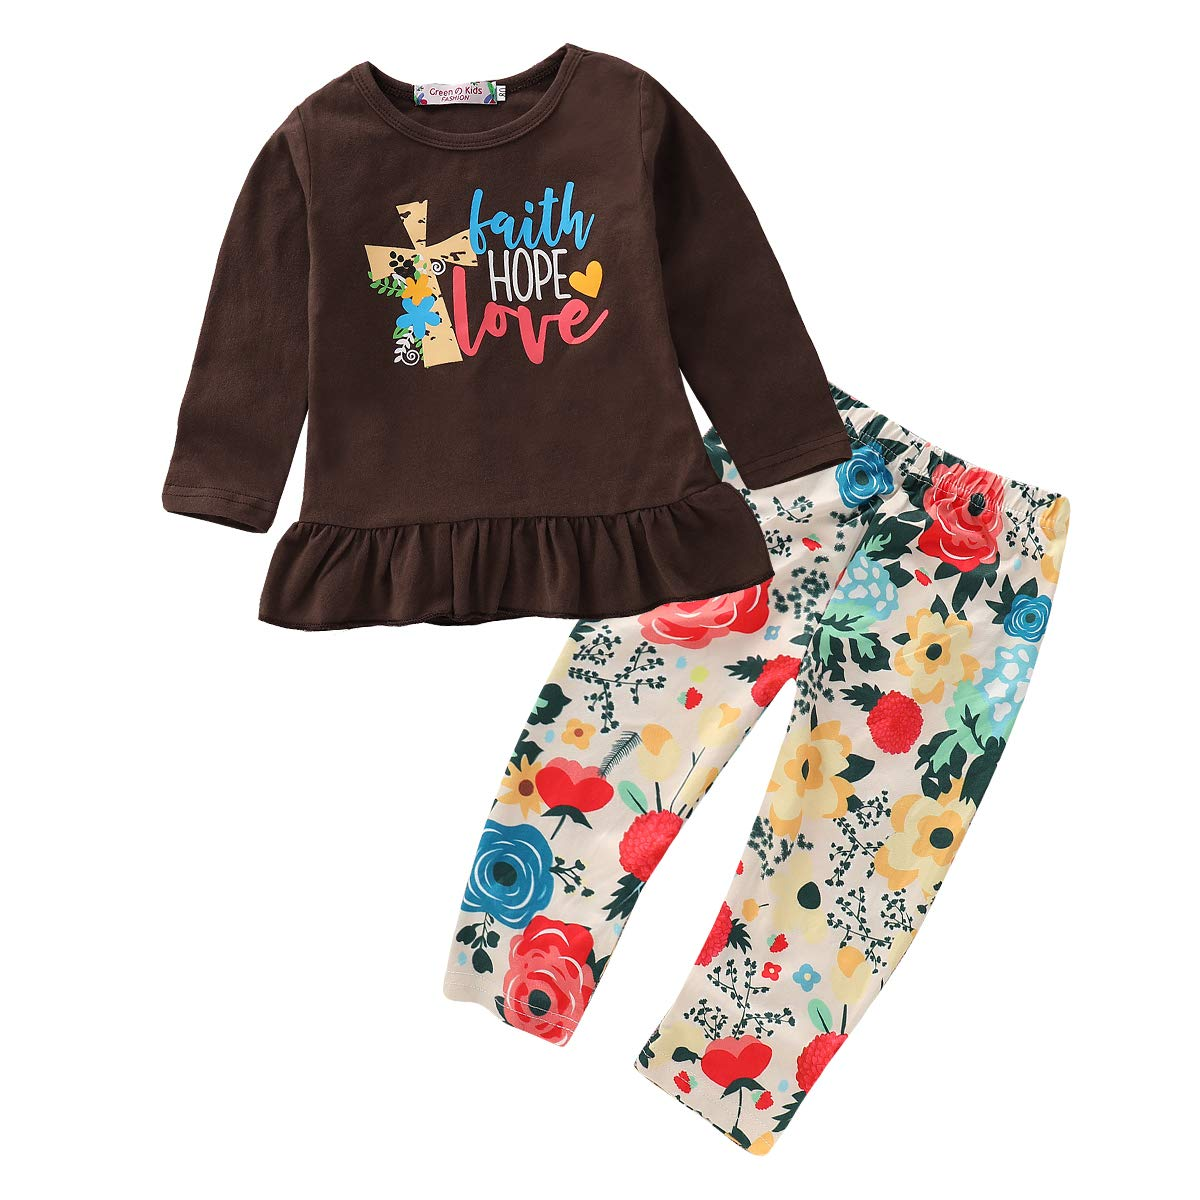 2Pcs Toddler Kid Baby Girls Outfit Long Sleeve Ruffle Print Tops + Floral Pants Clothes Set